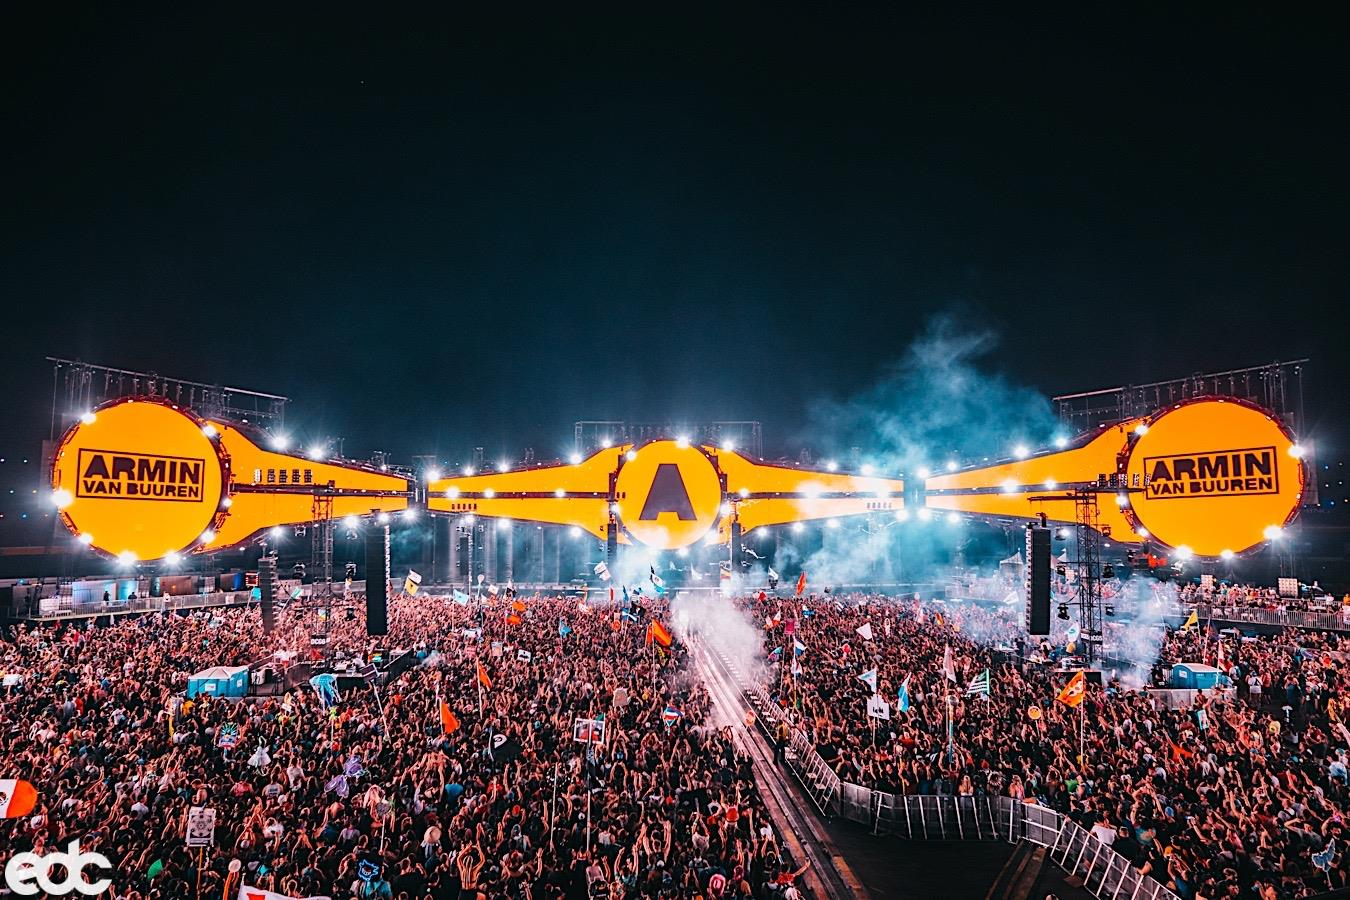 Edc Las Vegas 2018 Circuitgrounds Armin Van Buuren further puter Science Backgrounds Free Download moreover Diagram De Pert together with 142125471957 as well 524950900289258555. on electric circuit font